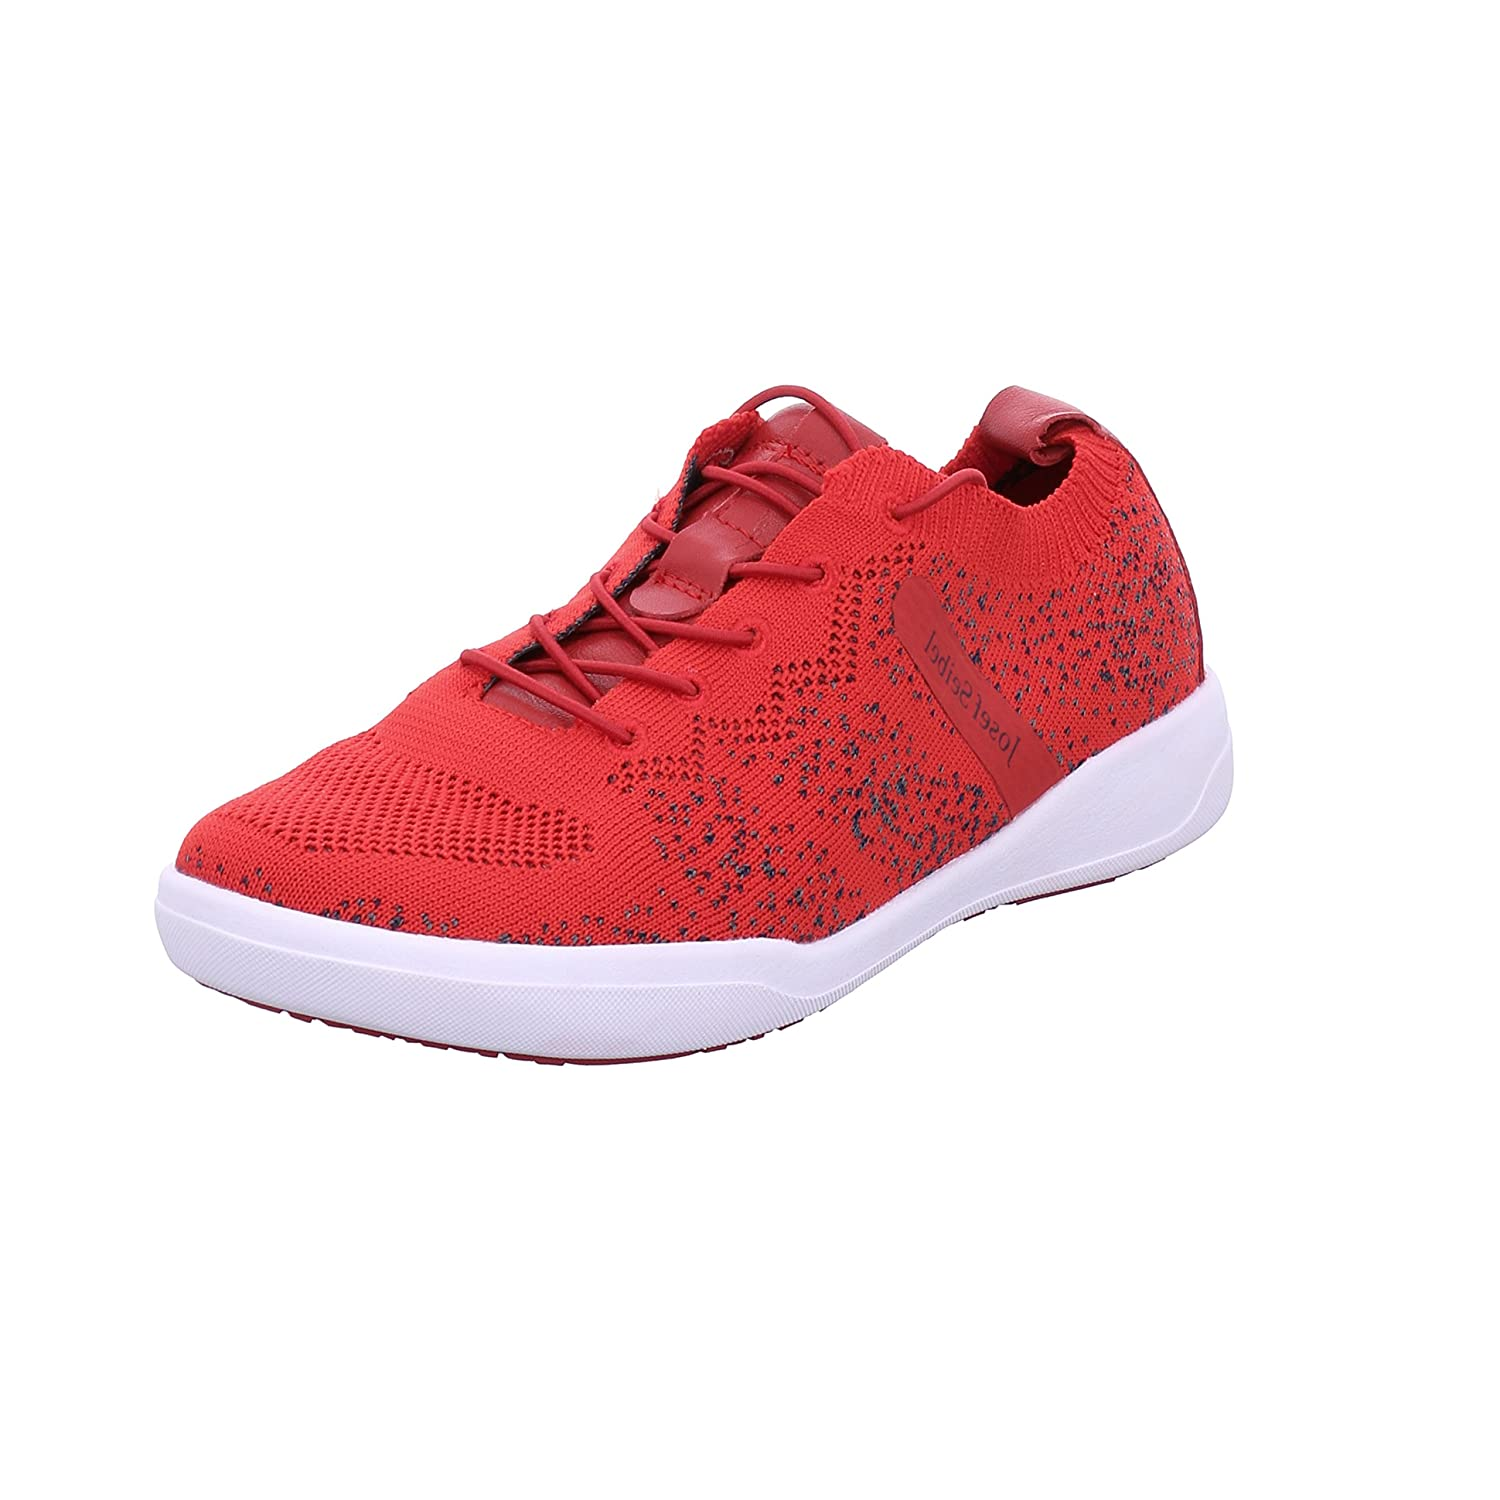 Josef Seibel Women/'s Sina 43 Trainers